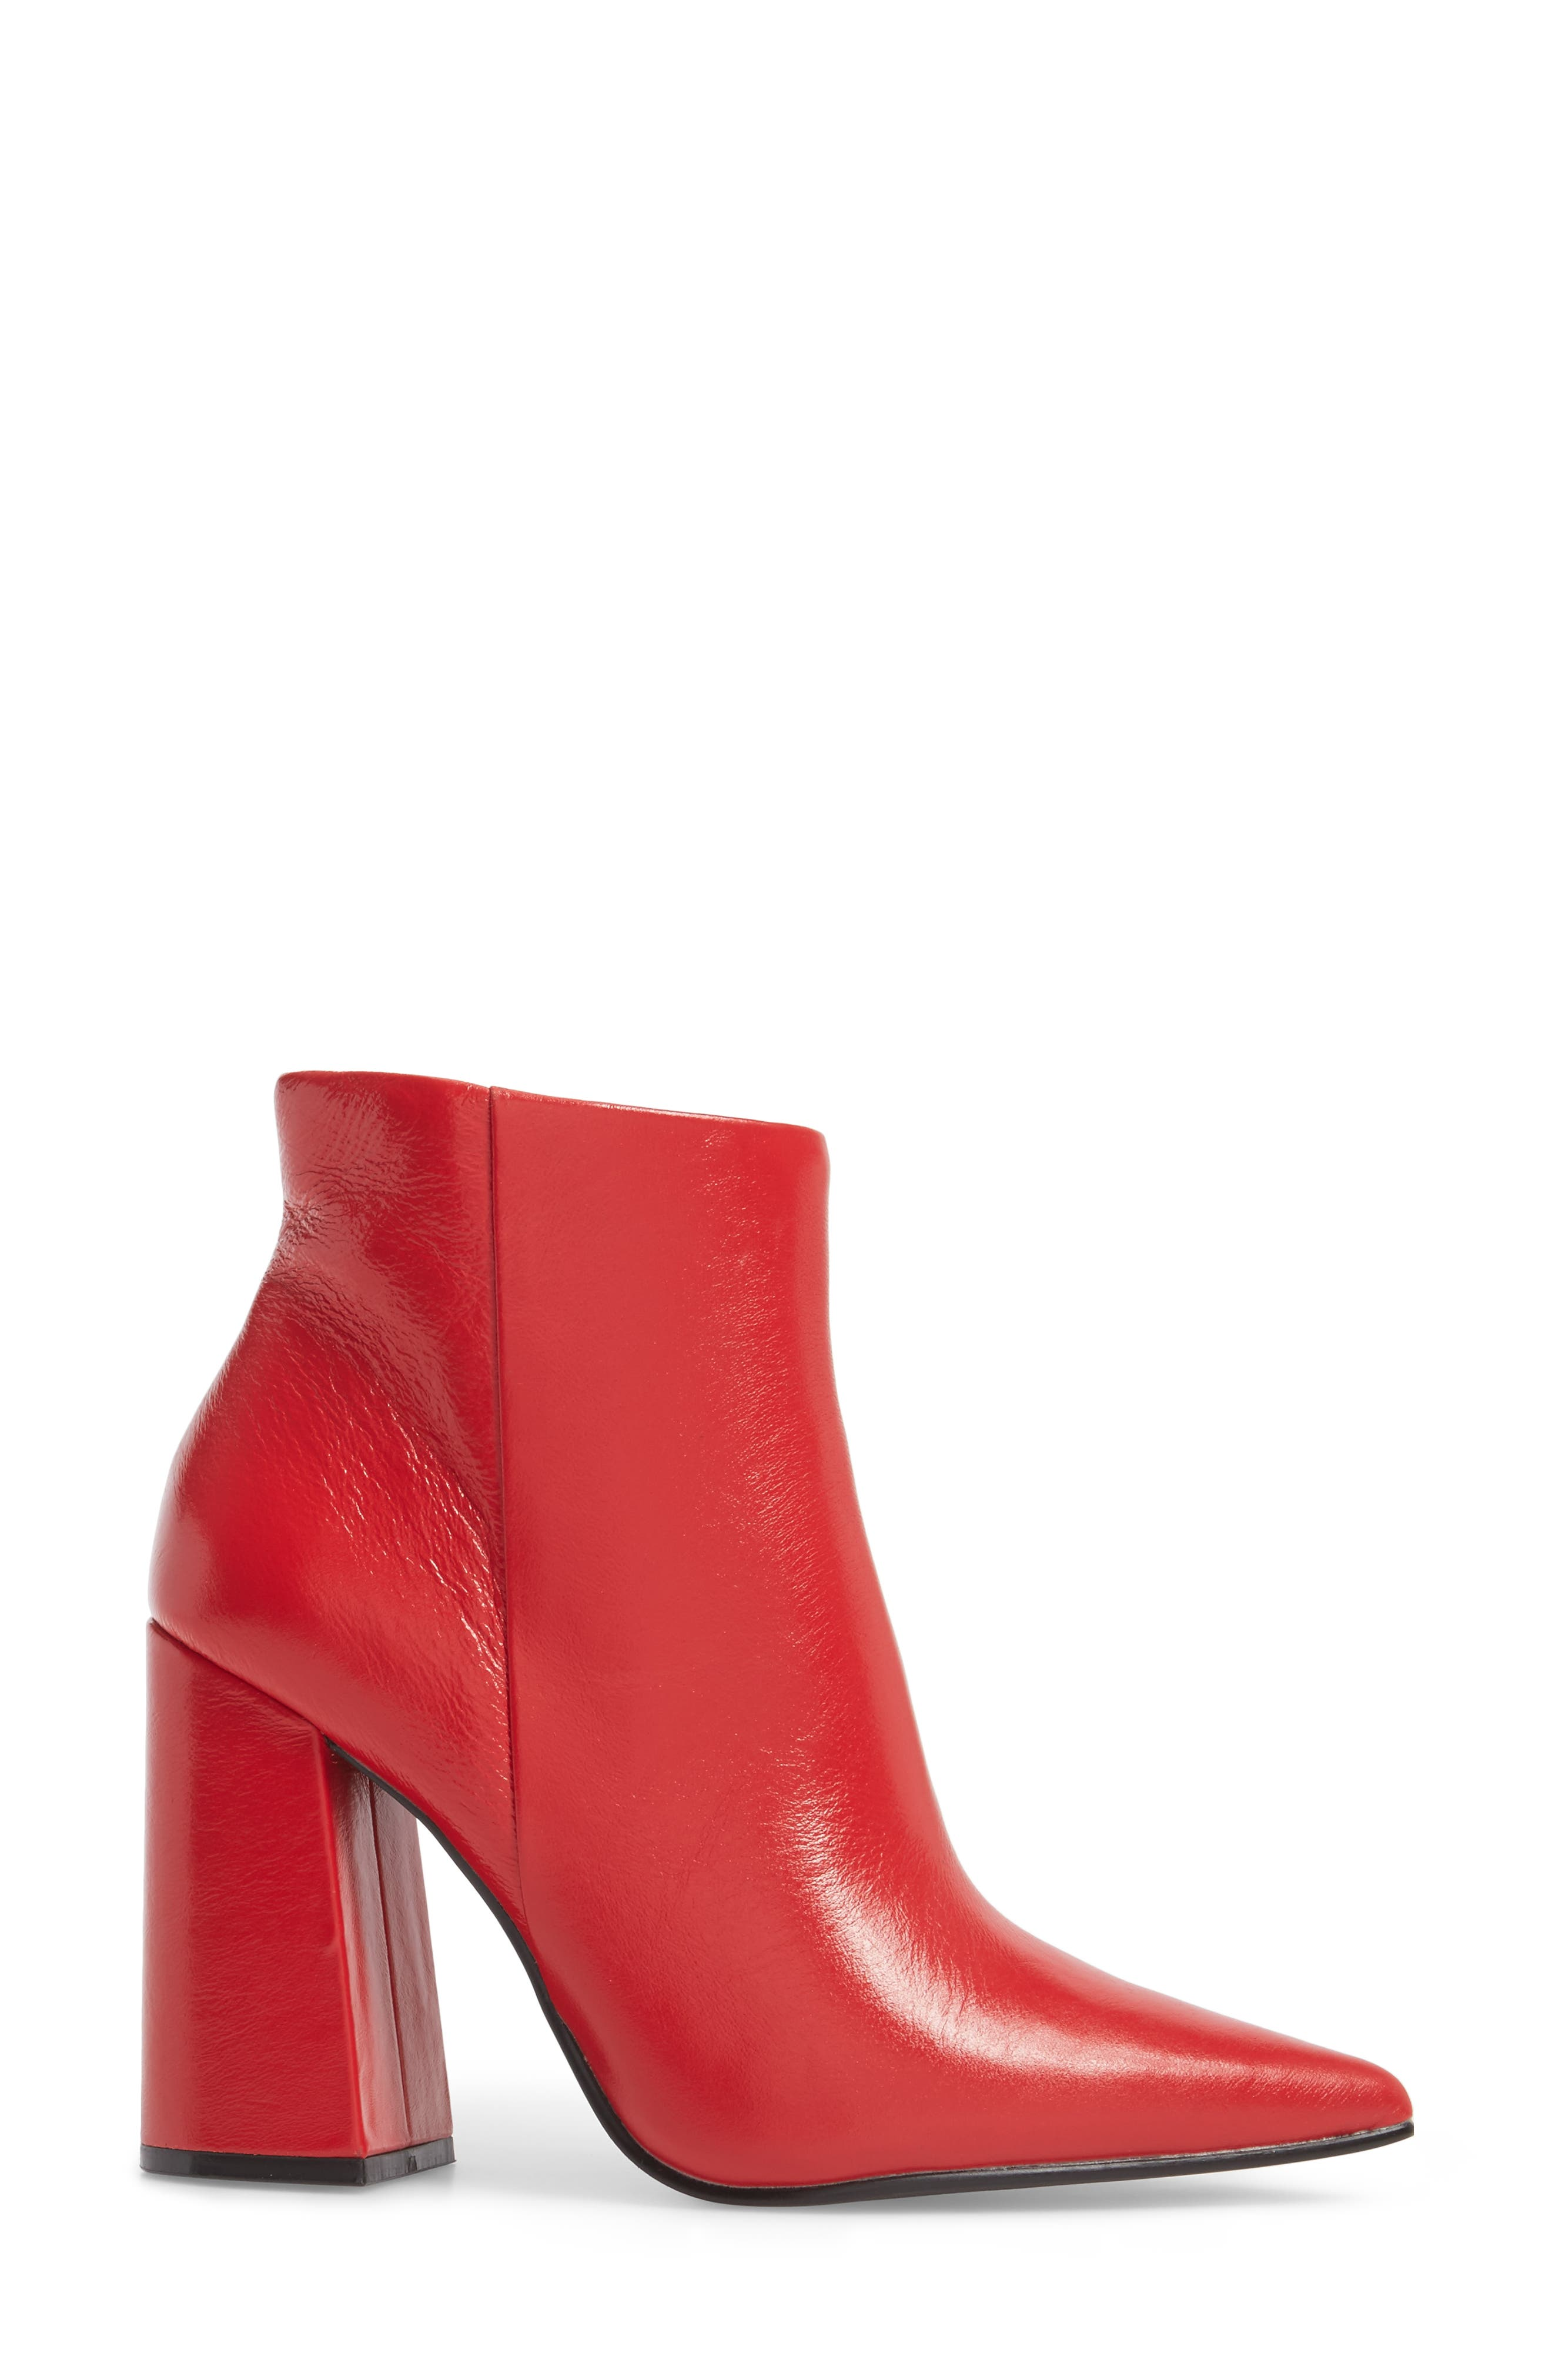 Justify Flared Heel Bootie,                             Alternate thumbnail 6, color,